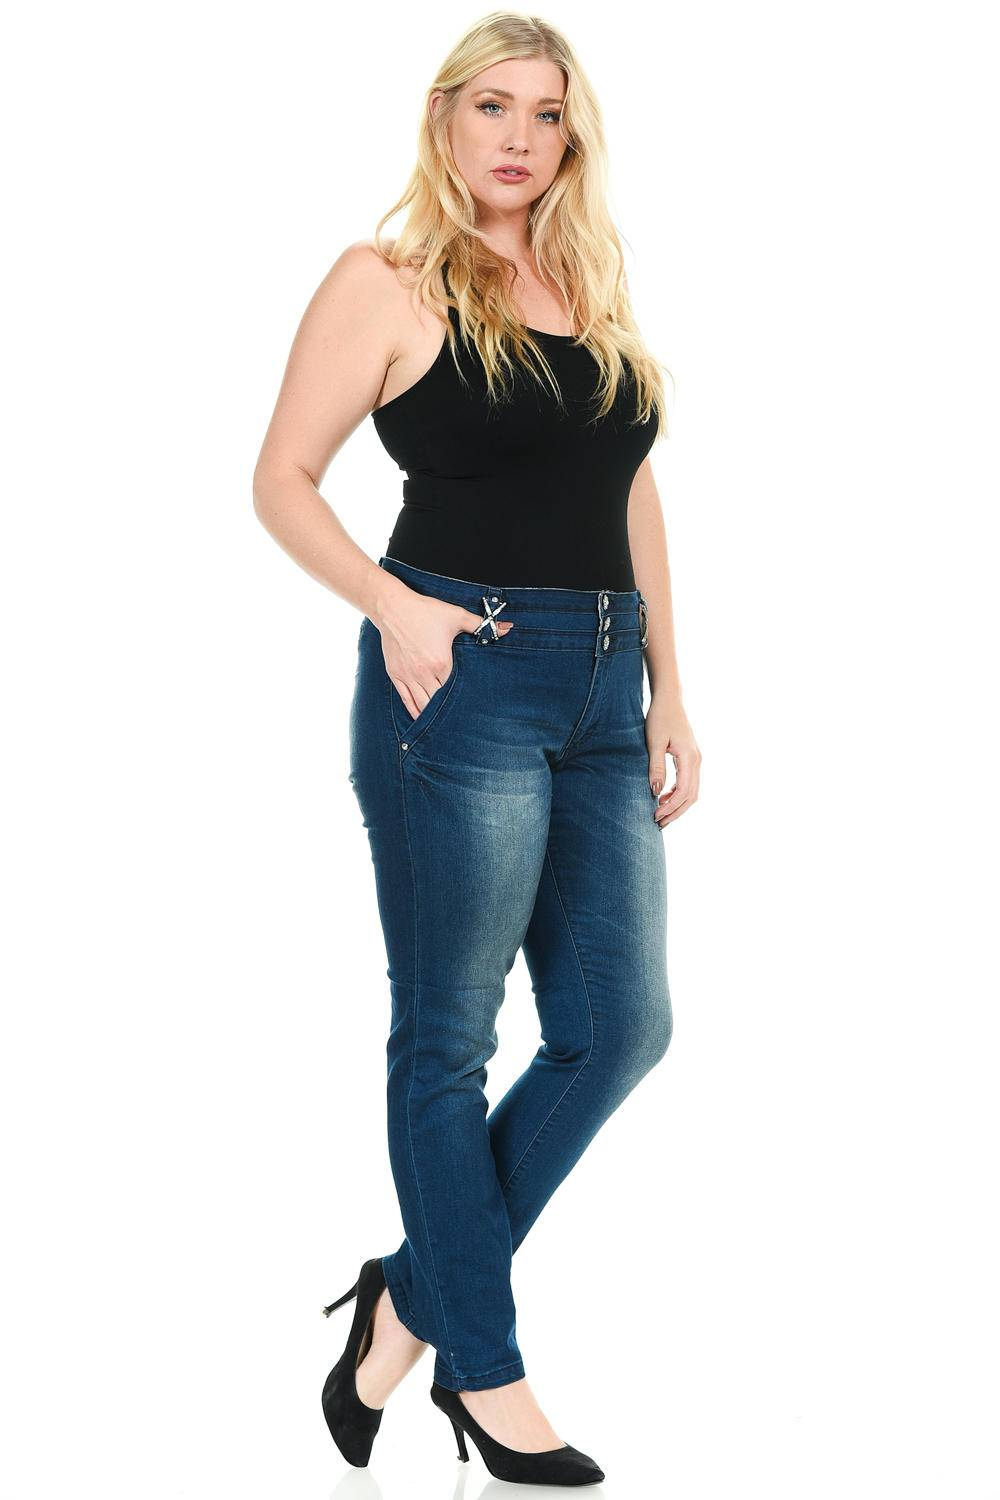 42fd9ac979a Sweet Look Premium Edition Women s Jeans (Sizing  14-24) · Plus Size · High  Waist · Push Up · Style 001